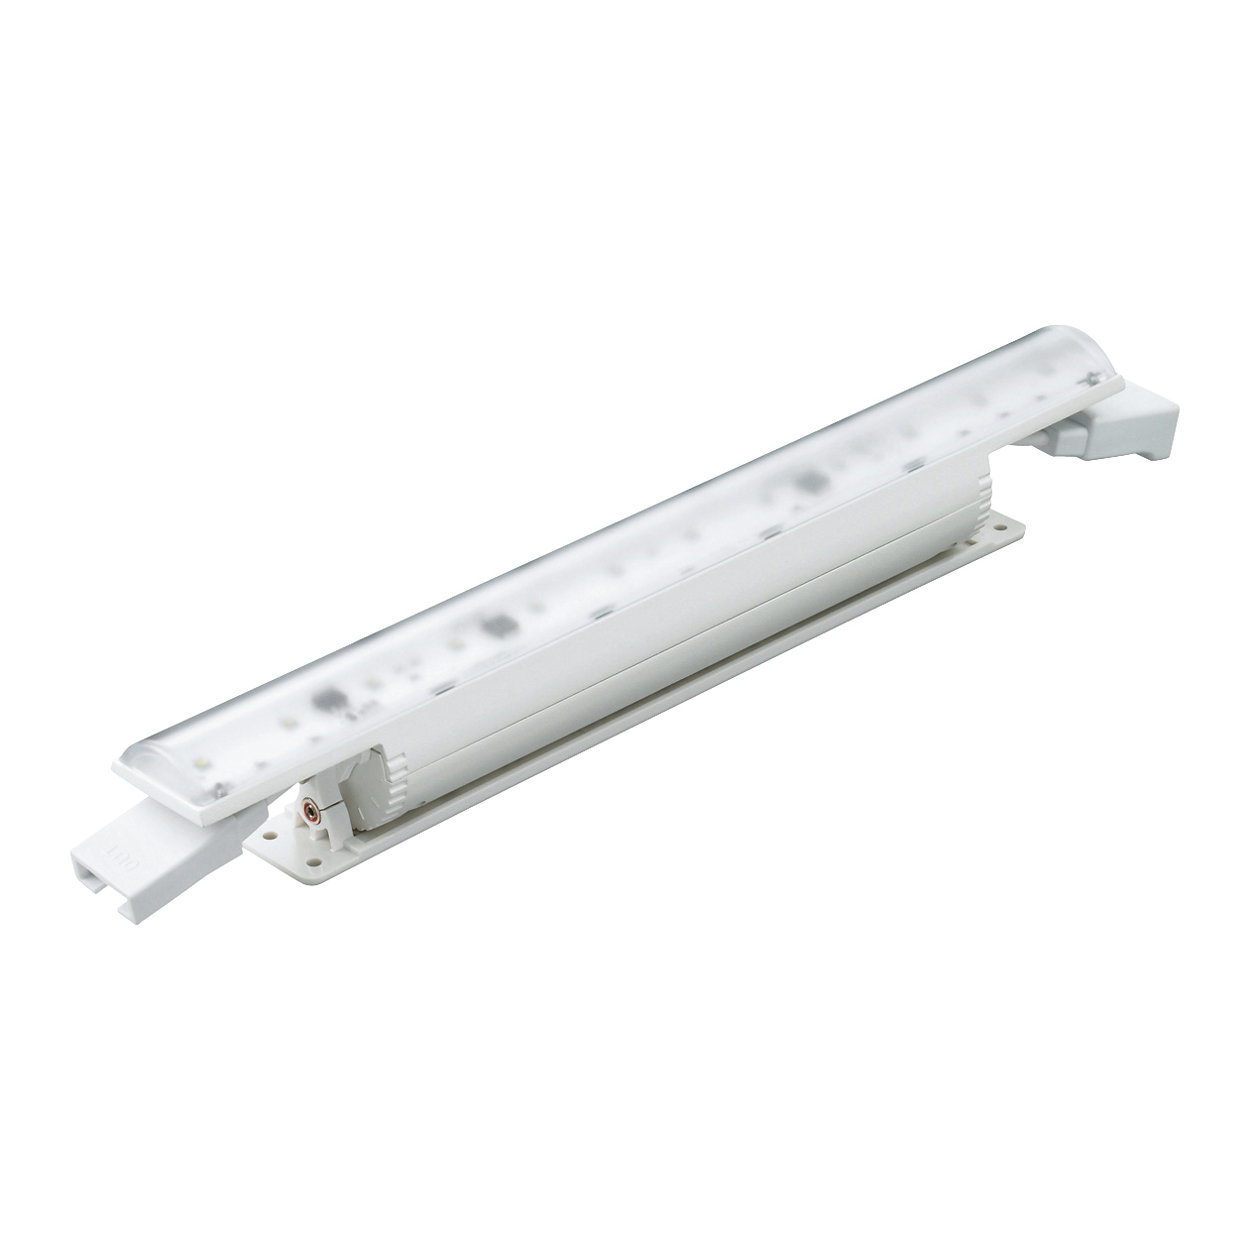 iW Cove MX Powercore – Premium interior linear LED cove and accent luminaire with intelligent white light